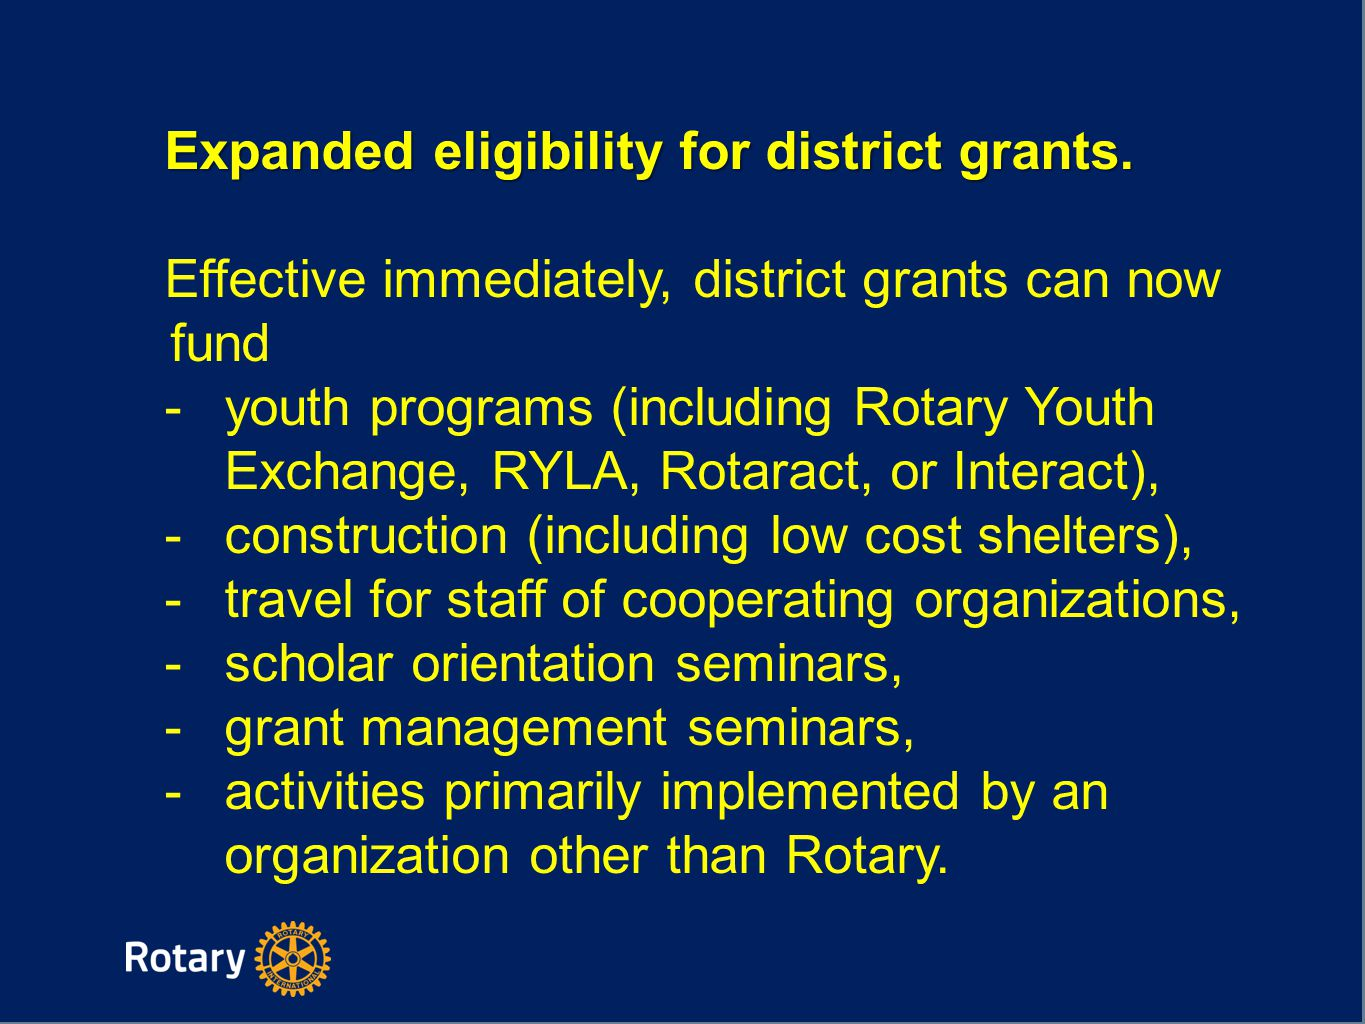 Expanded eligibility for district grants.